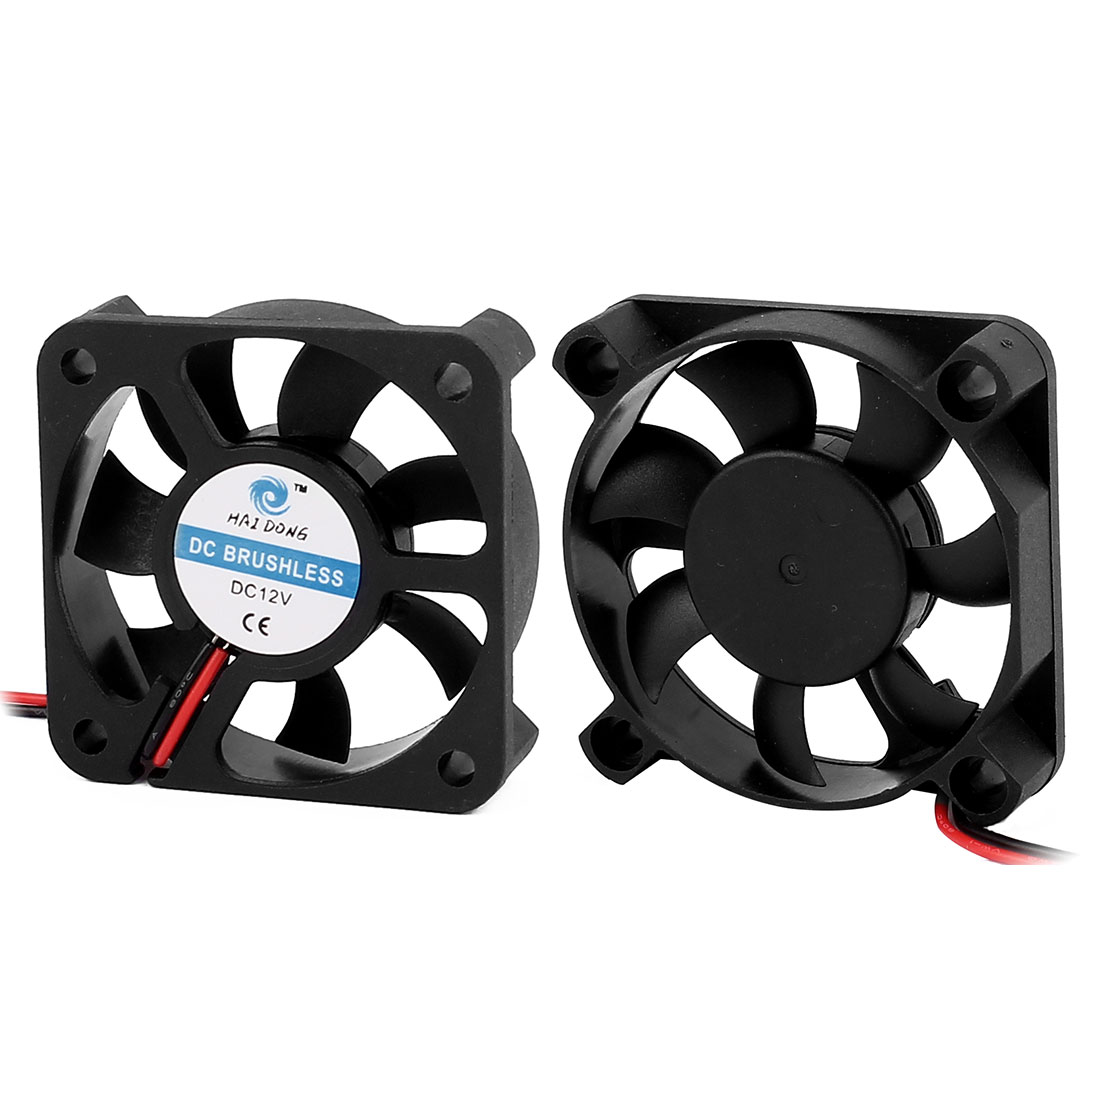 2Pcs 50x50x12mm 12V Computer/PC/CPU Silent Extractor Cooling Case Fan 7 Vanes Black